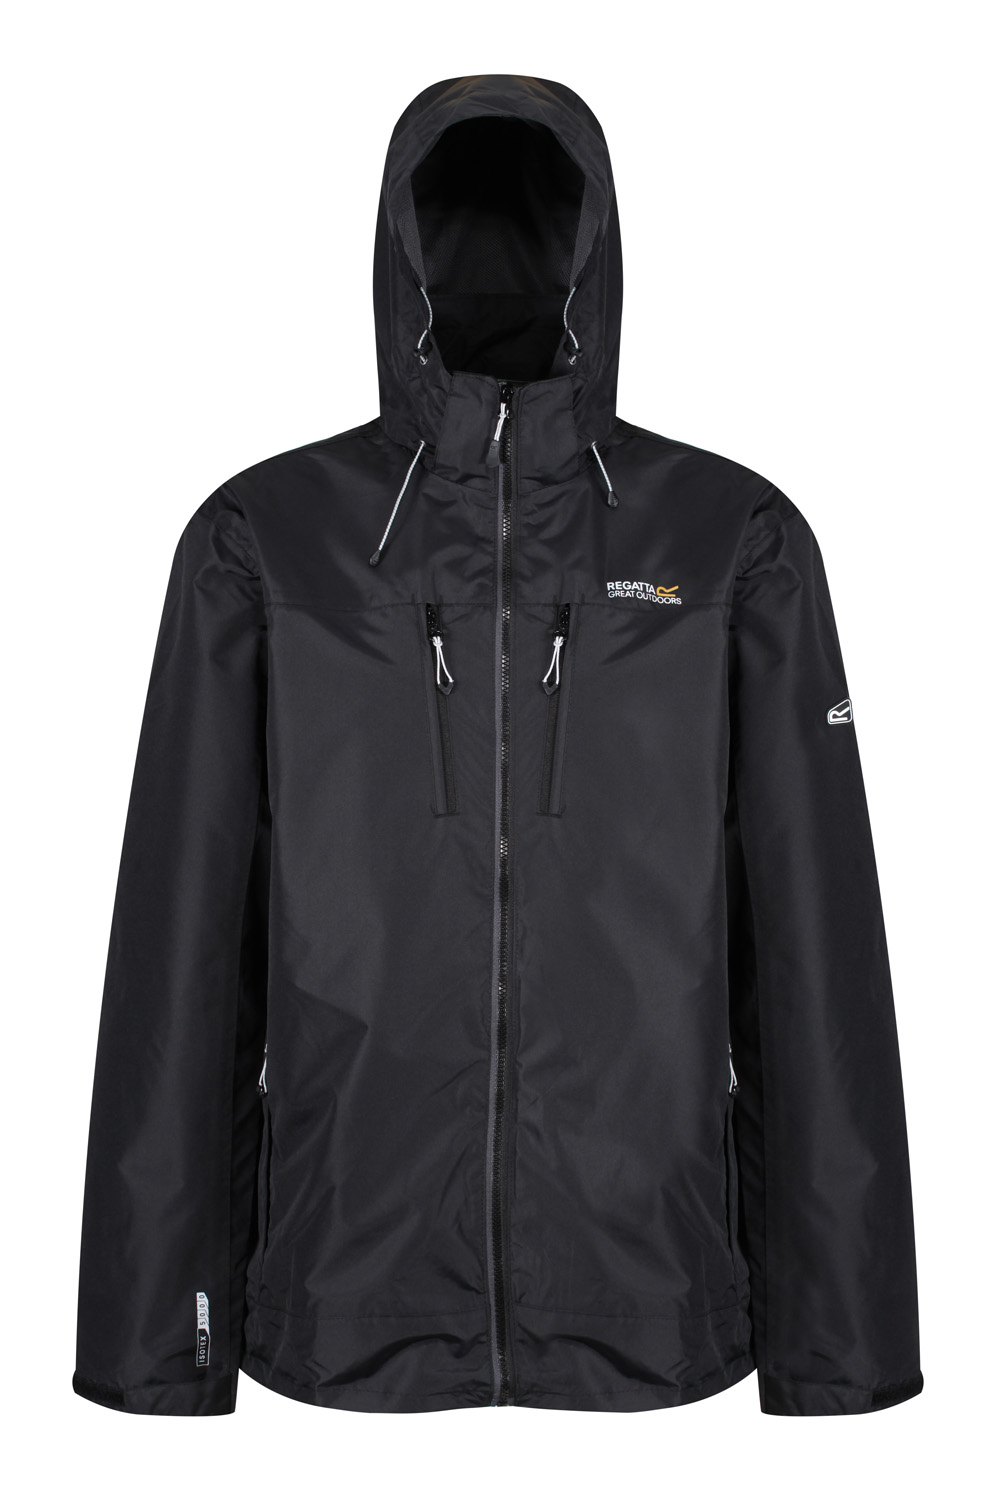 Regatta-Mens-Calderdale-II-Jacket-Waterproof-Breathable-Isotex-5000-Hooded-Coat thumbnail 5